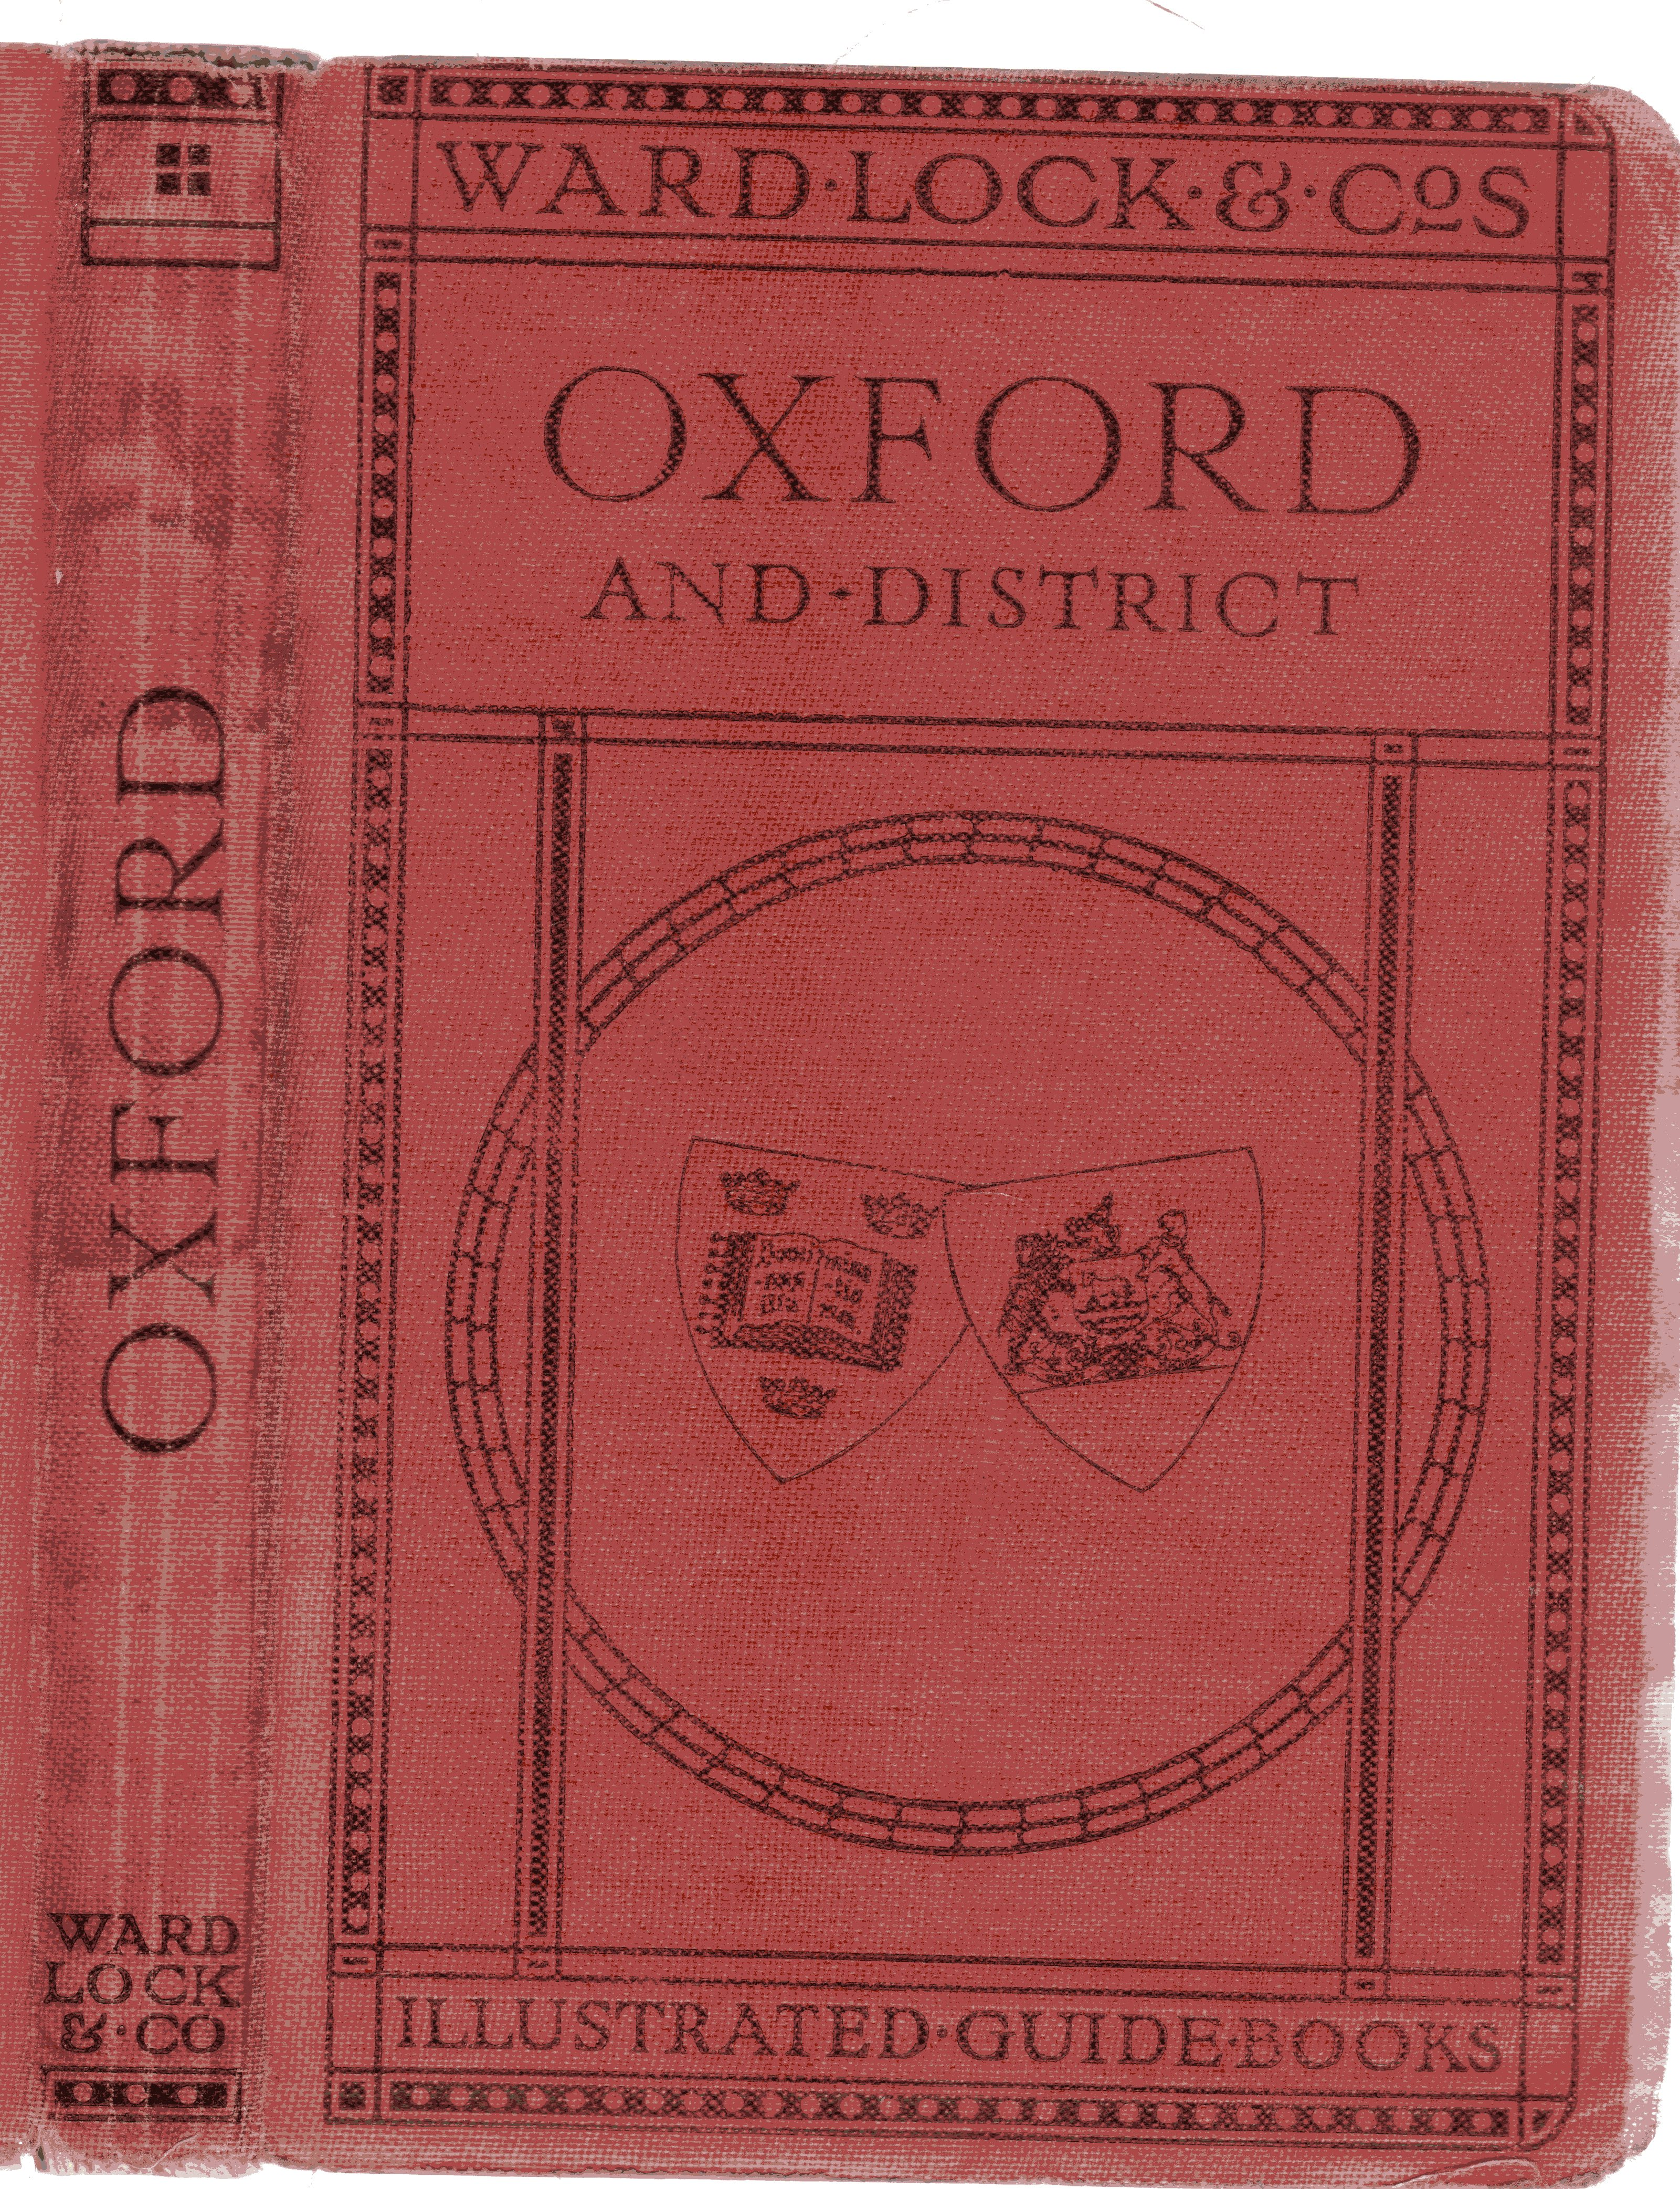 Image for A New Pictorial and Descriptive Guide to Oxford and District. With Key Plan of the College, Large Plan of the City, and Two District Maps. Sixty Illustrations.